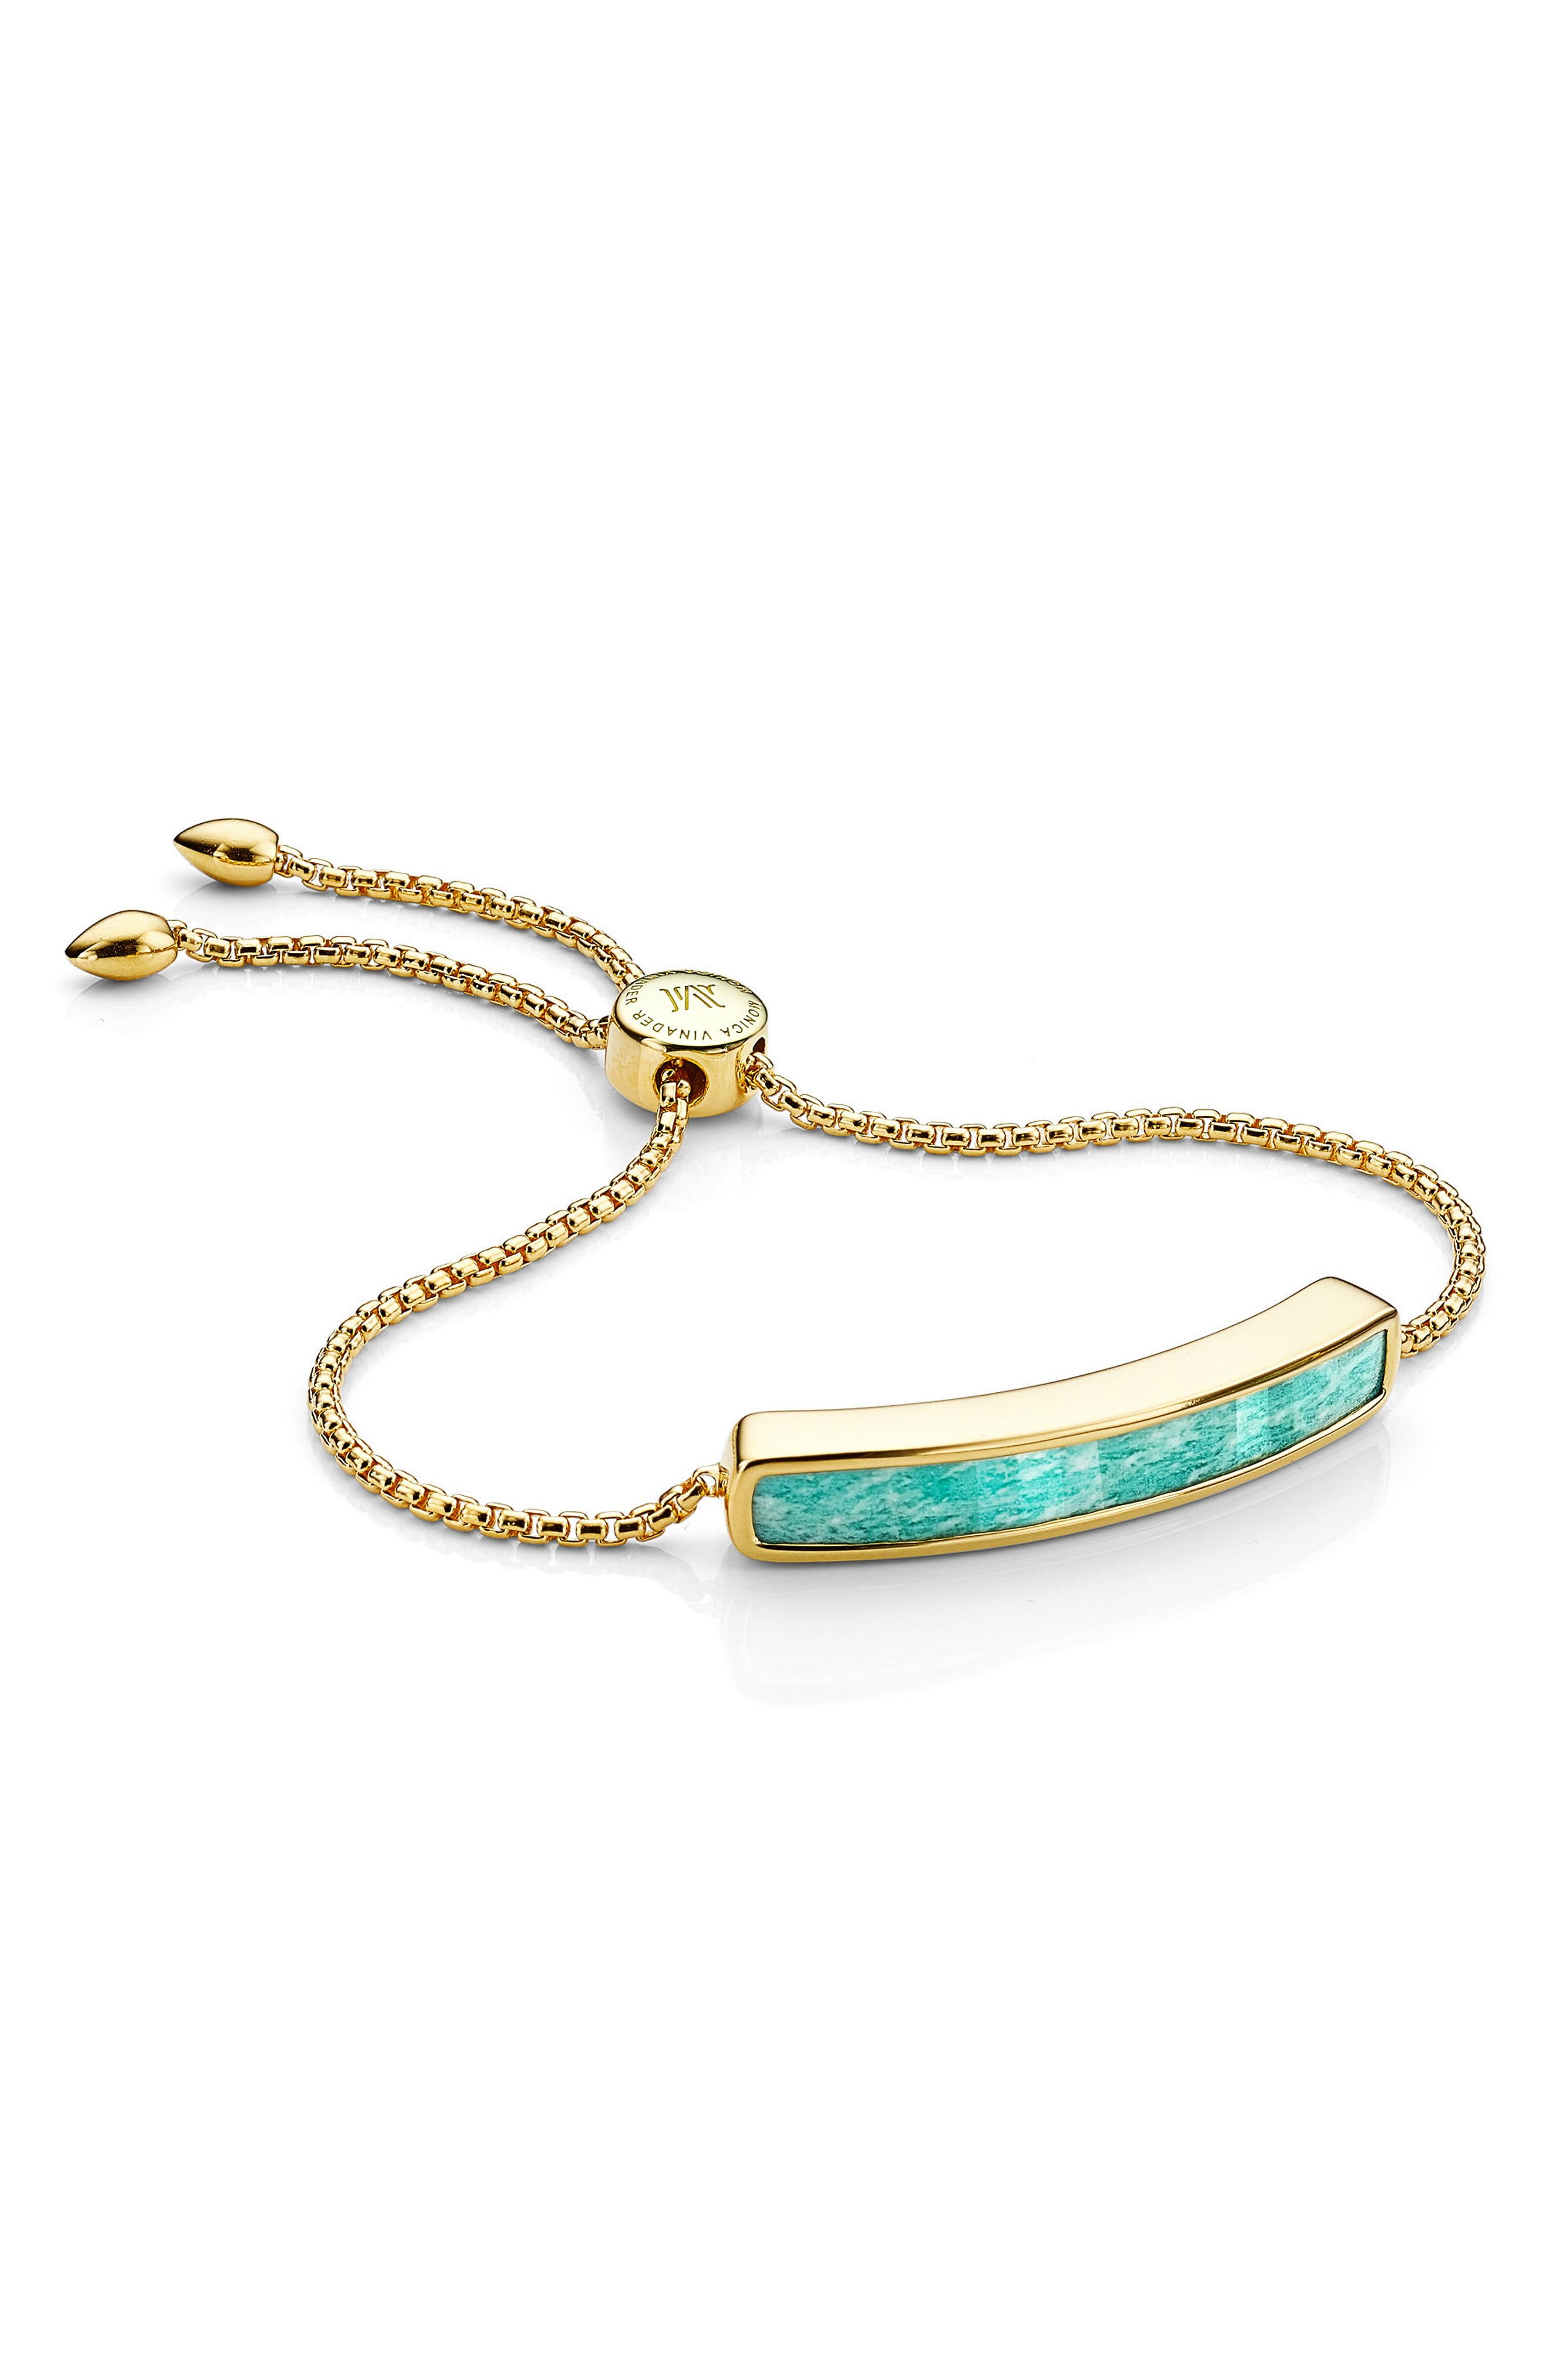 A Stone Bracelet MONICA VINADER Nordstrom $350.00 SHOP IT This art deco-inspired bracelet is great for layering with her other favorite pieces. It's adjustable to suit all wrist sizes and comes with a pretty geometric stone as its center piece.